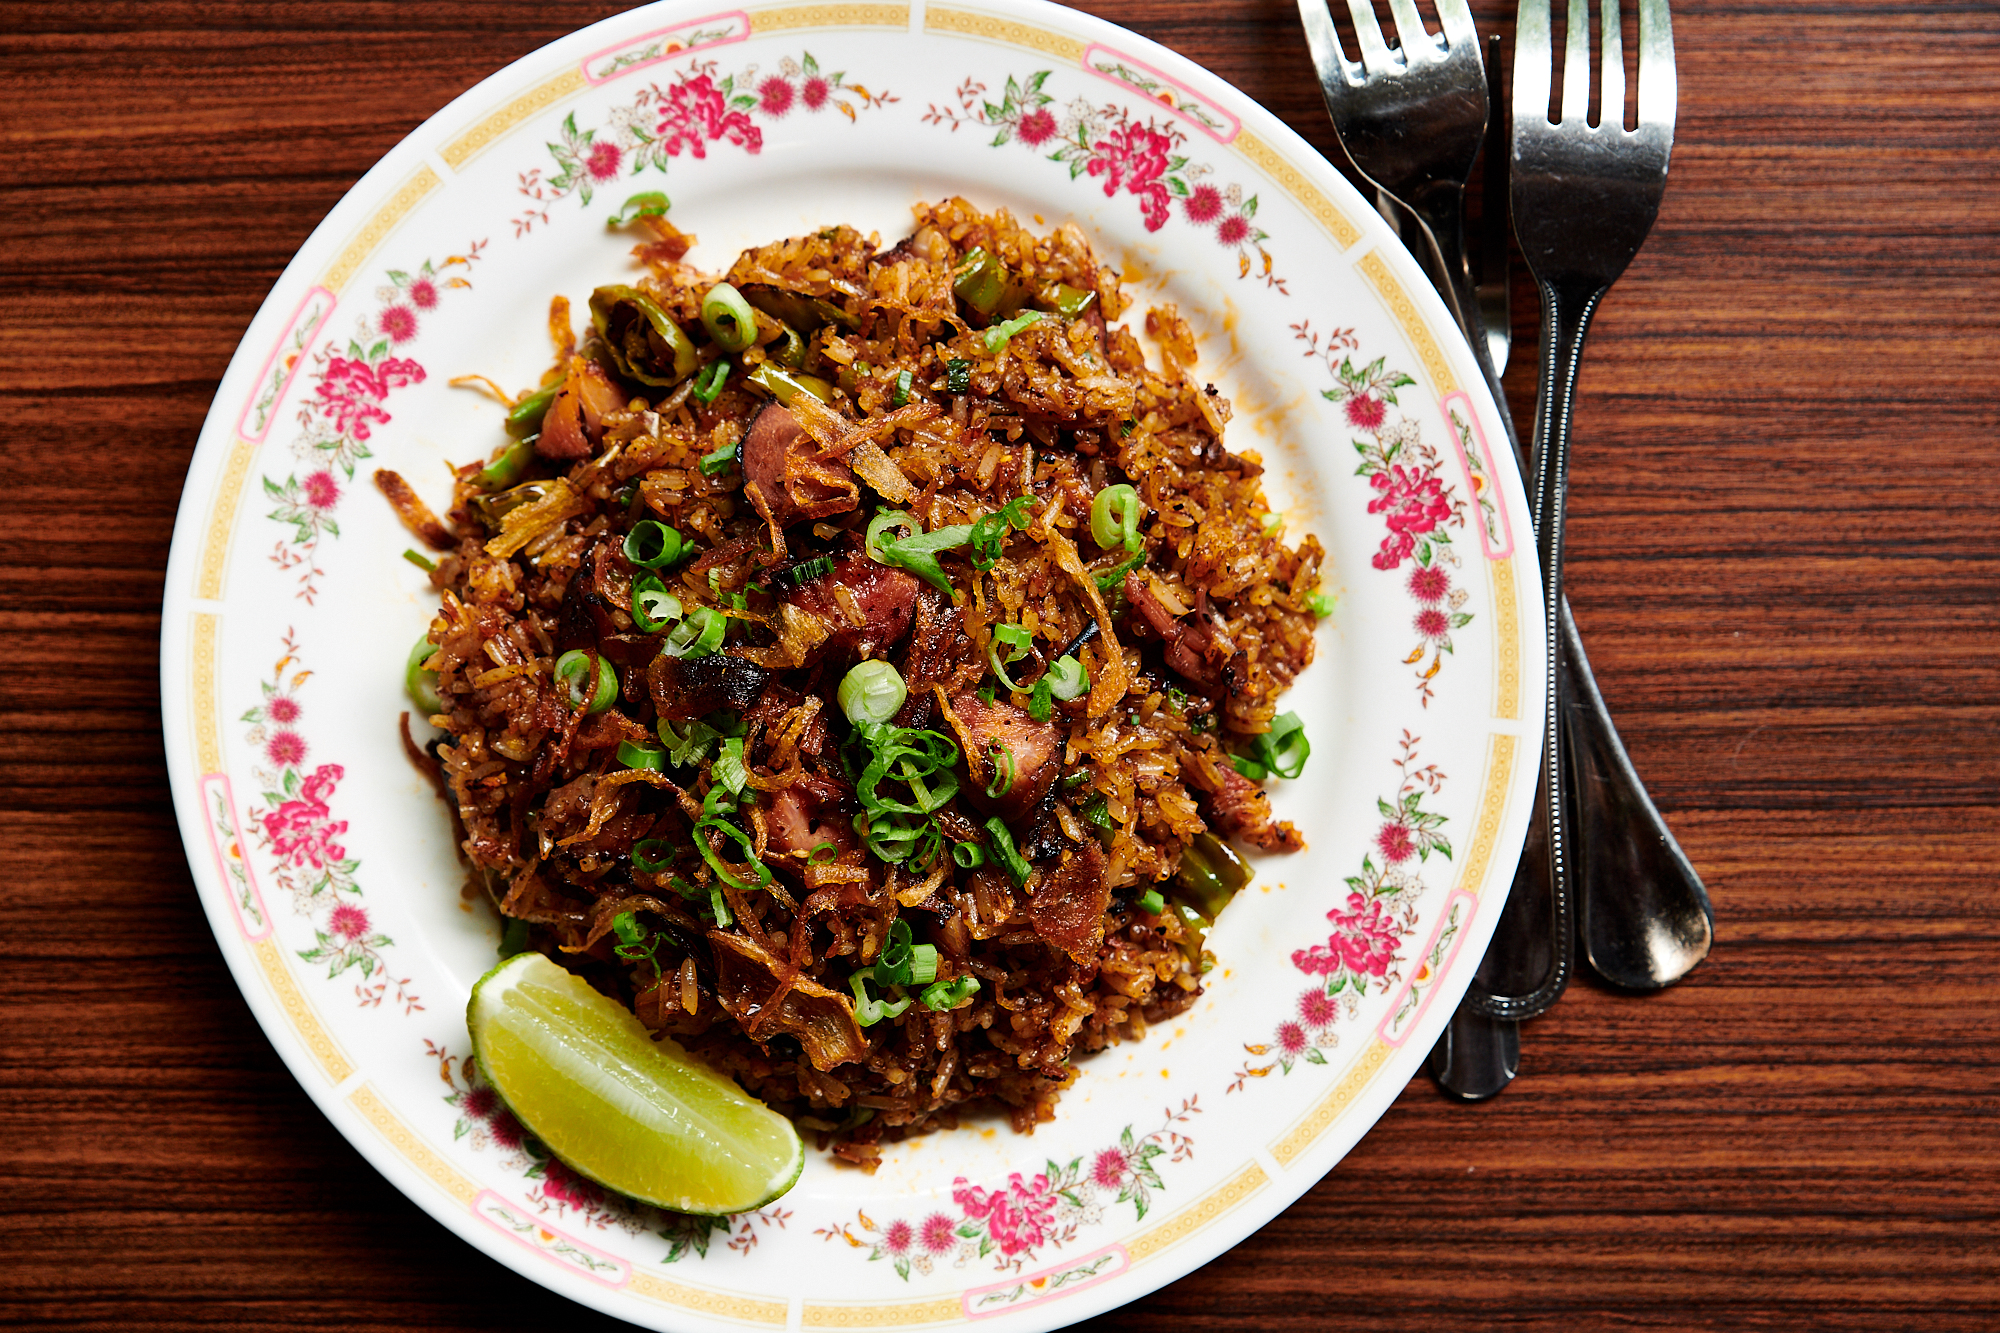 A picture of a plate of barbecue fried rice with a side of lime. The rice comes with a handful of sliced scallions.